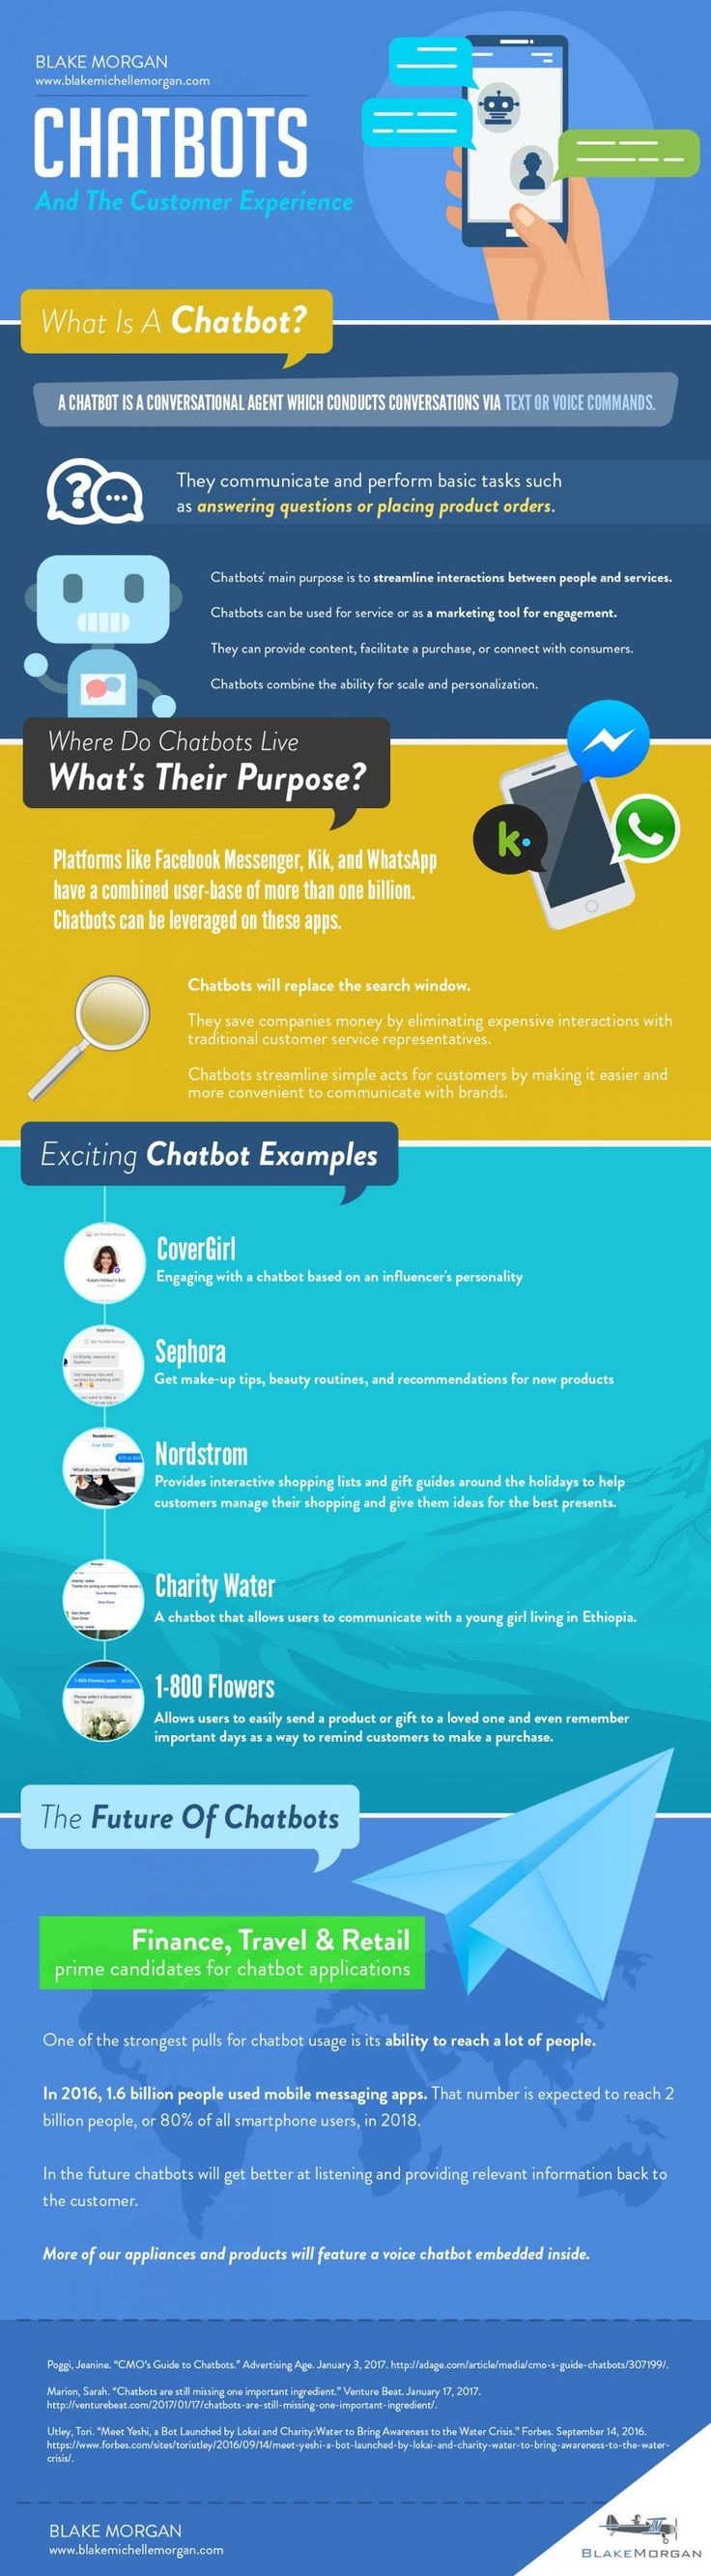 Great summary of Chatbots -- what they are, how they are used and more.